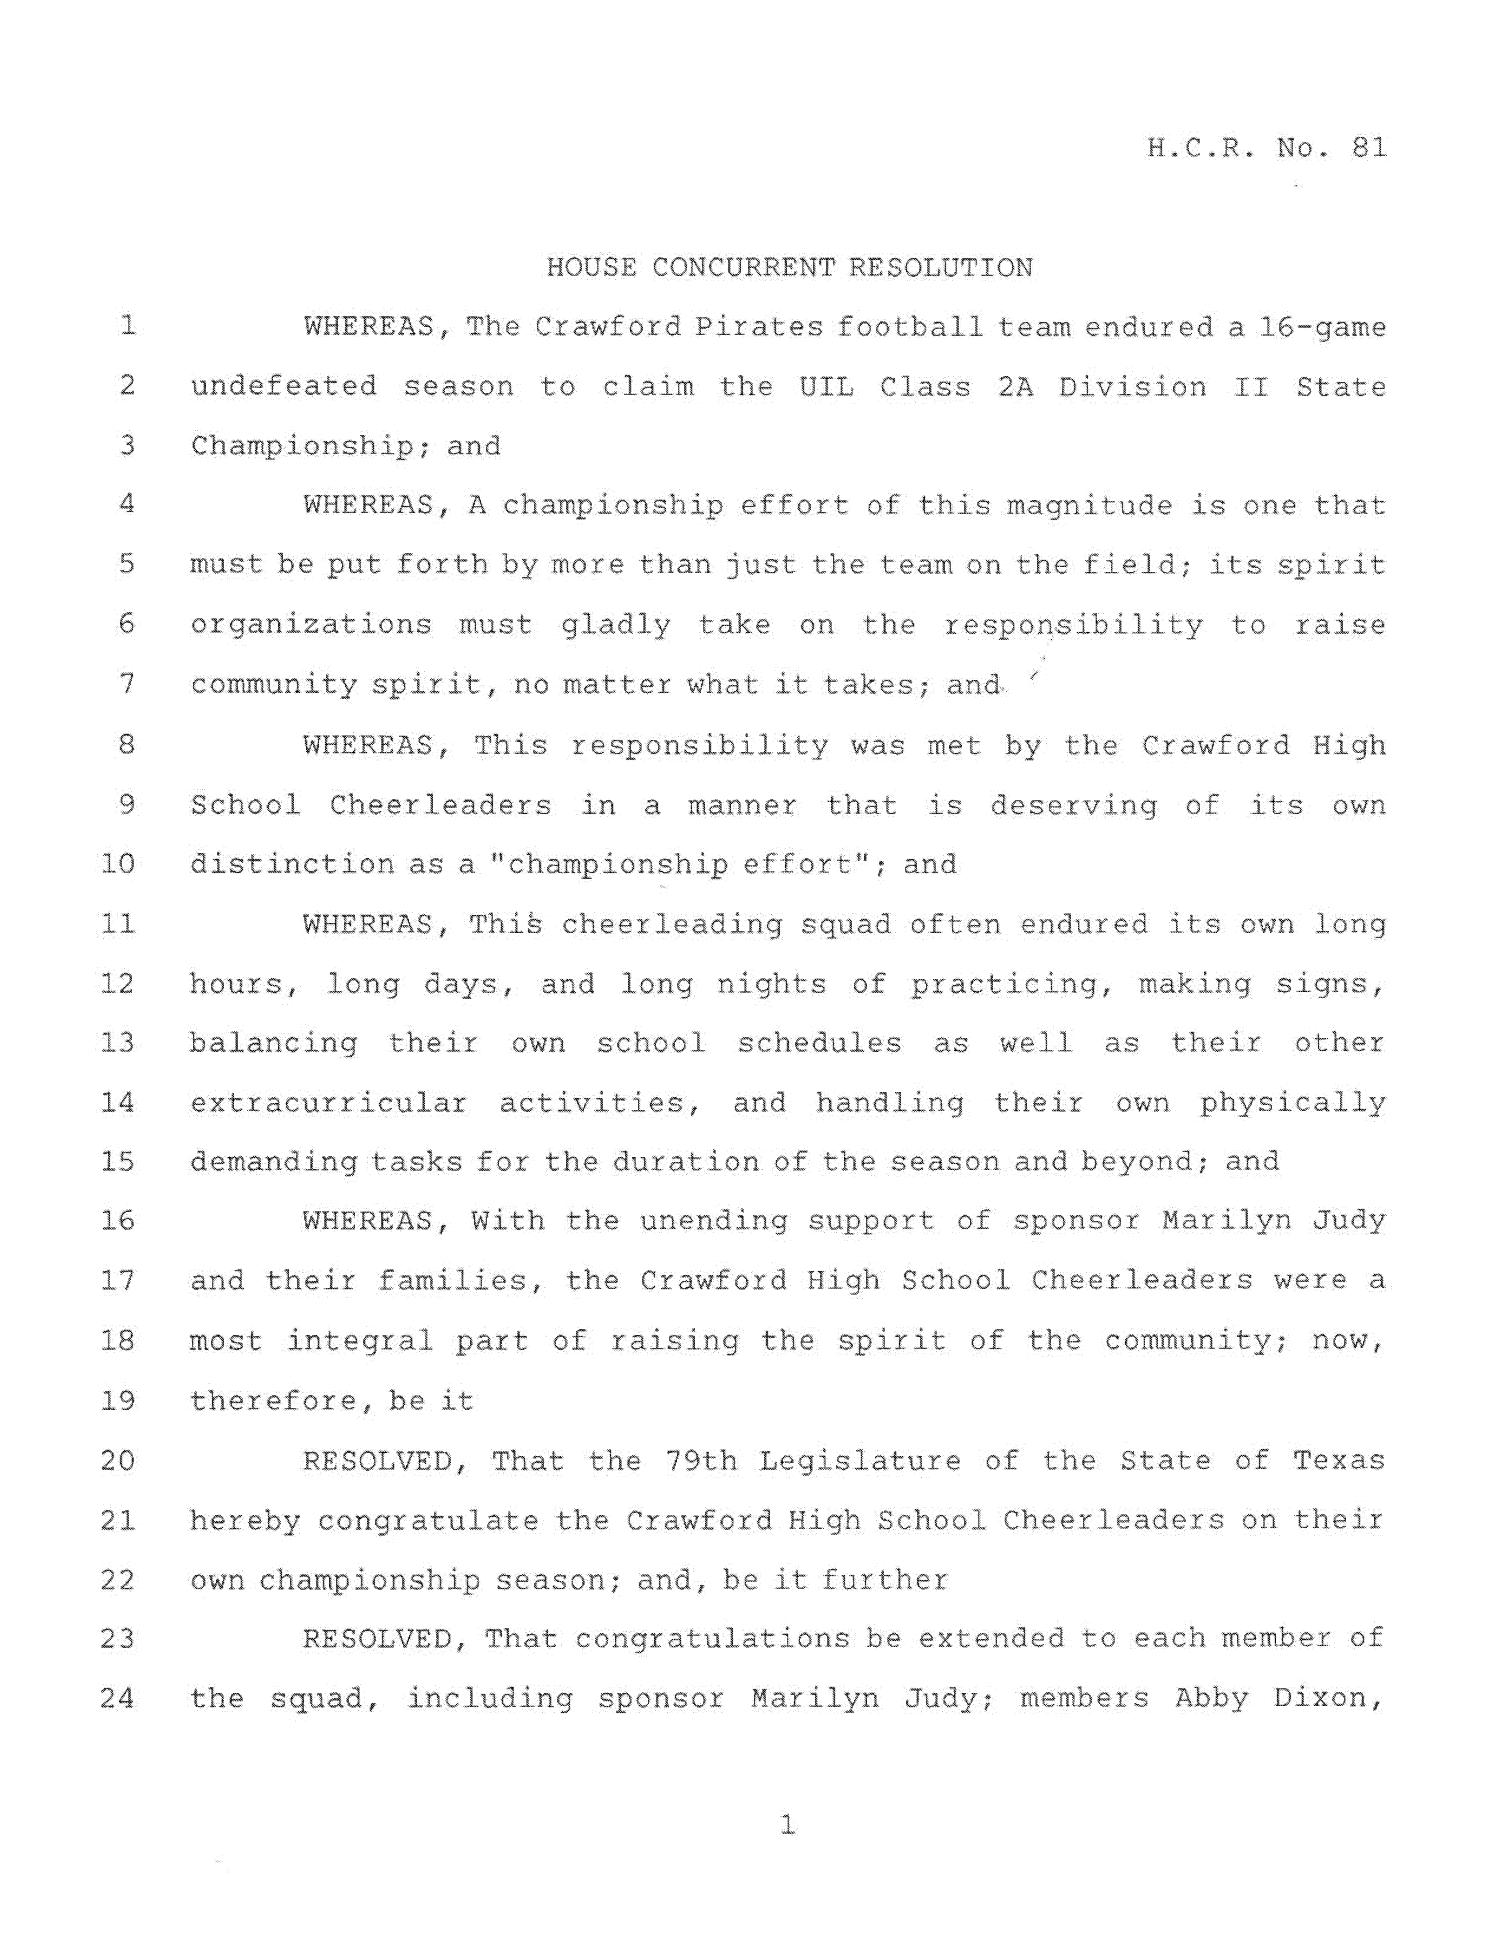 78th Texas Legislature, Regular Session, House Concurrent Resolutions 81                                                                                                      [Sequence #]: 1 of 3